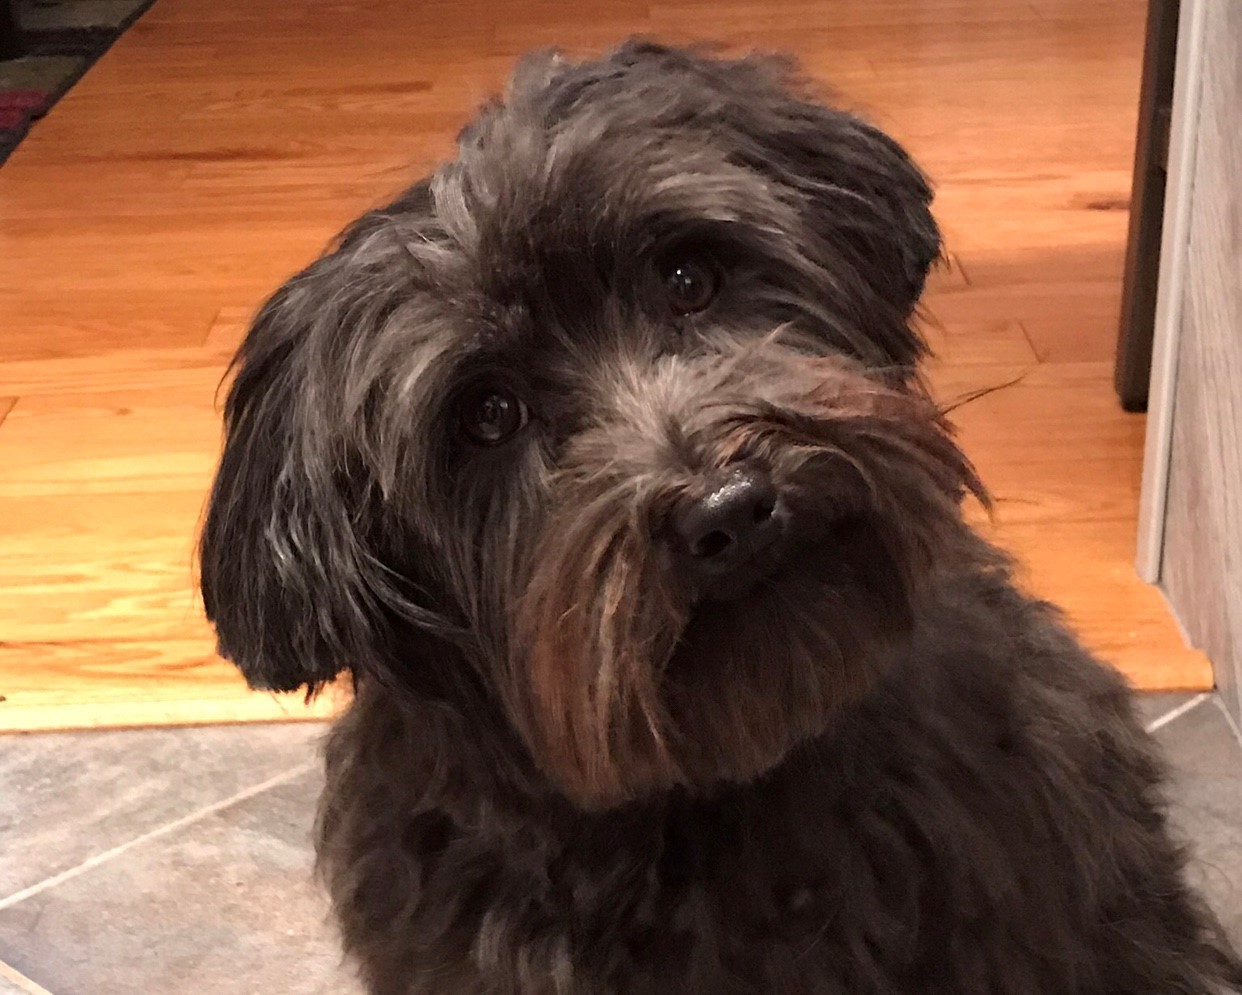 Black Havanese looking at camera with head tilted